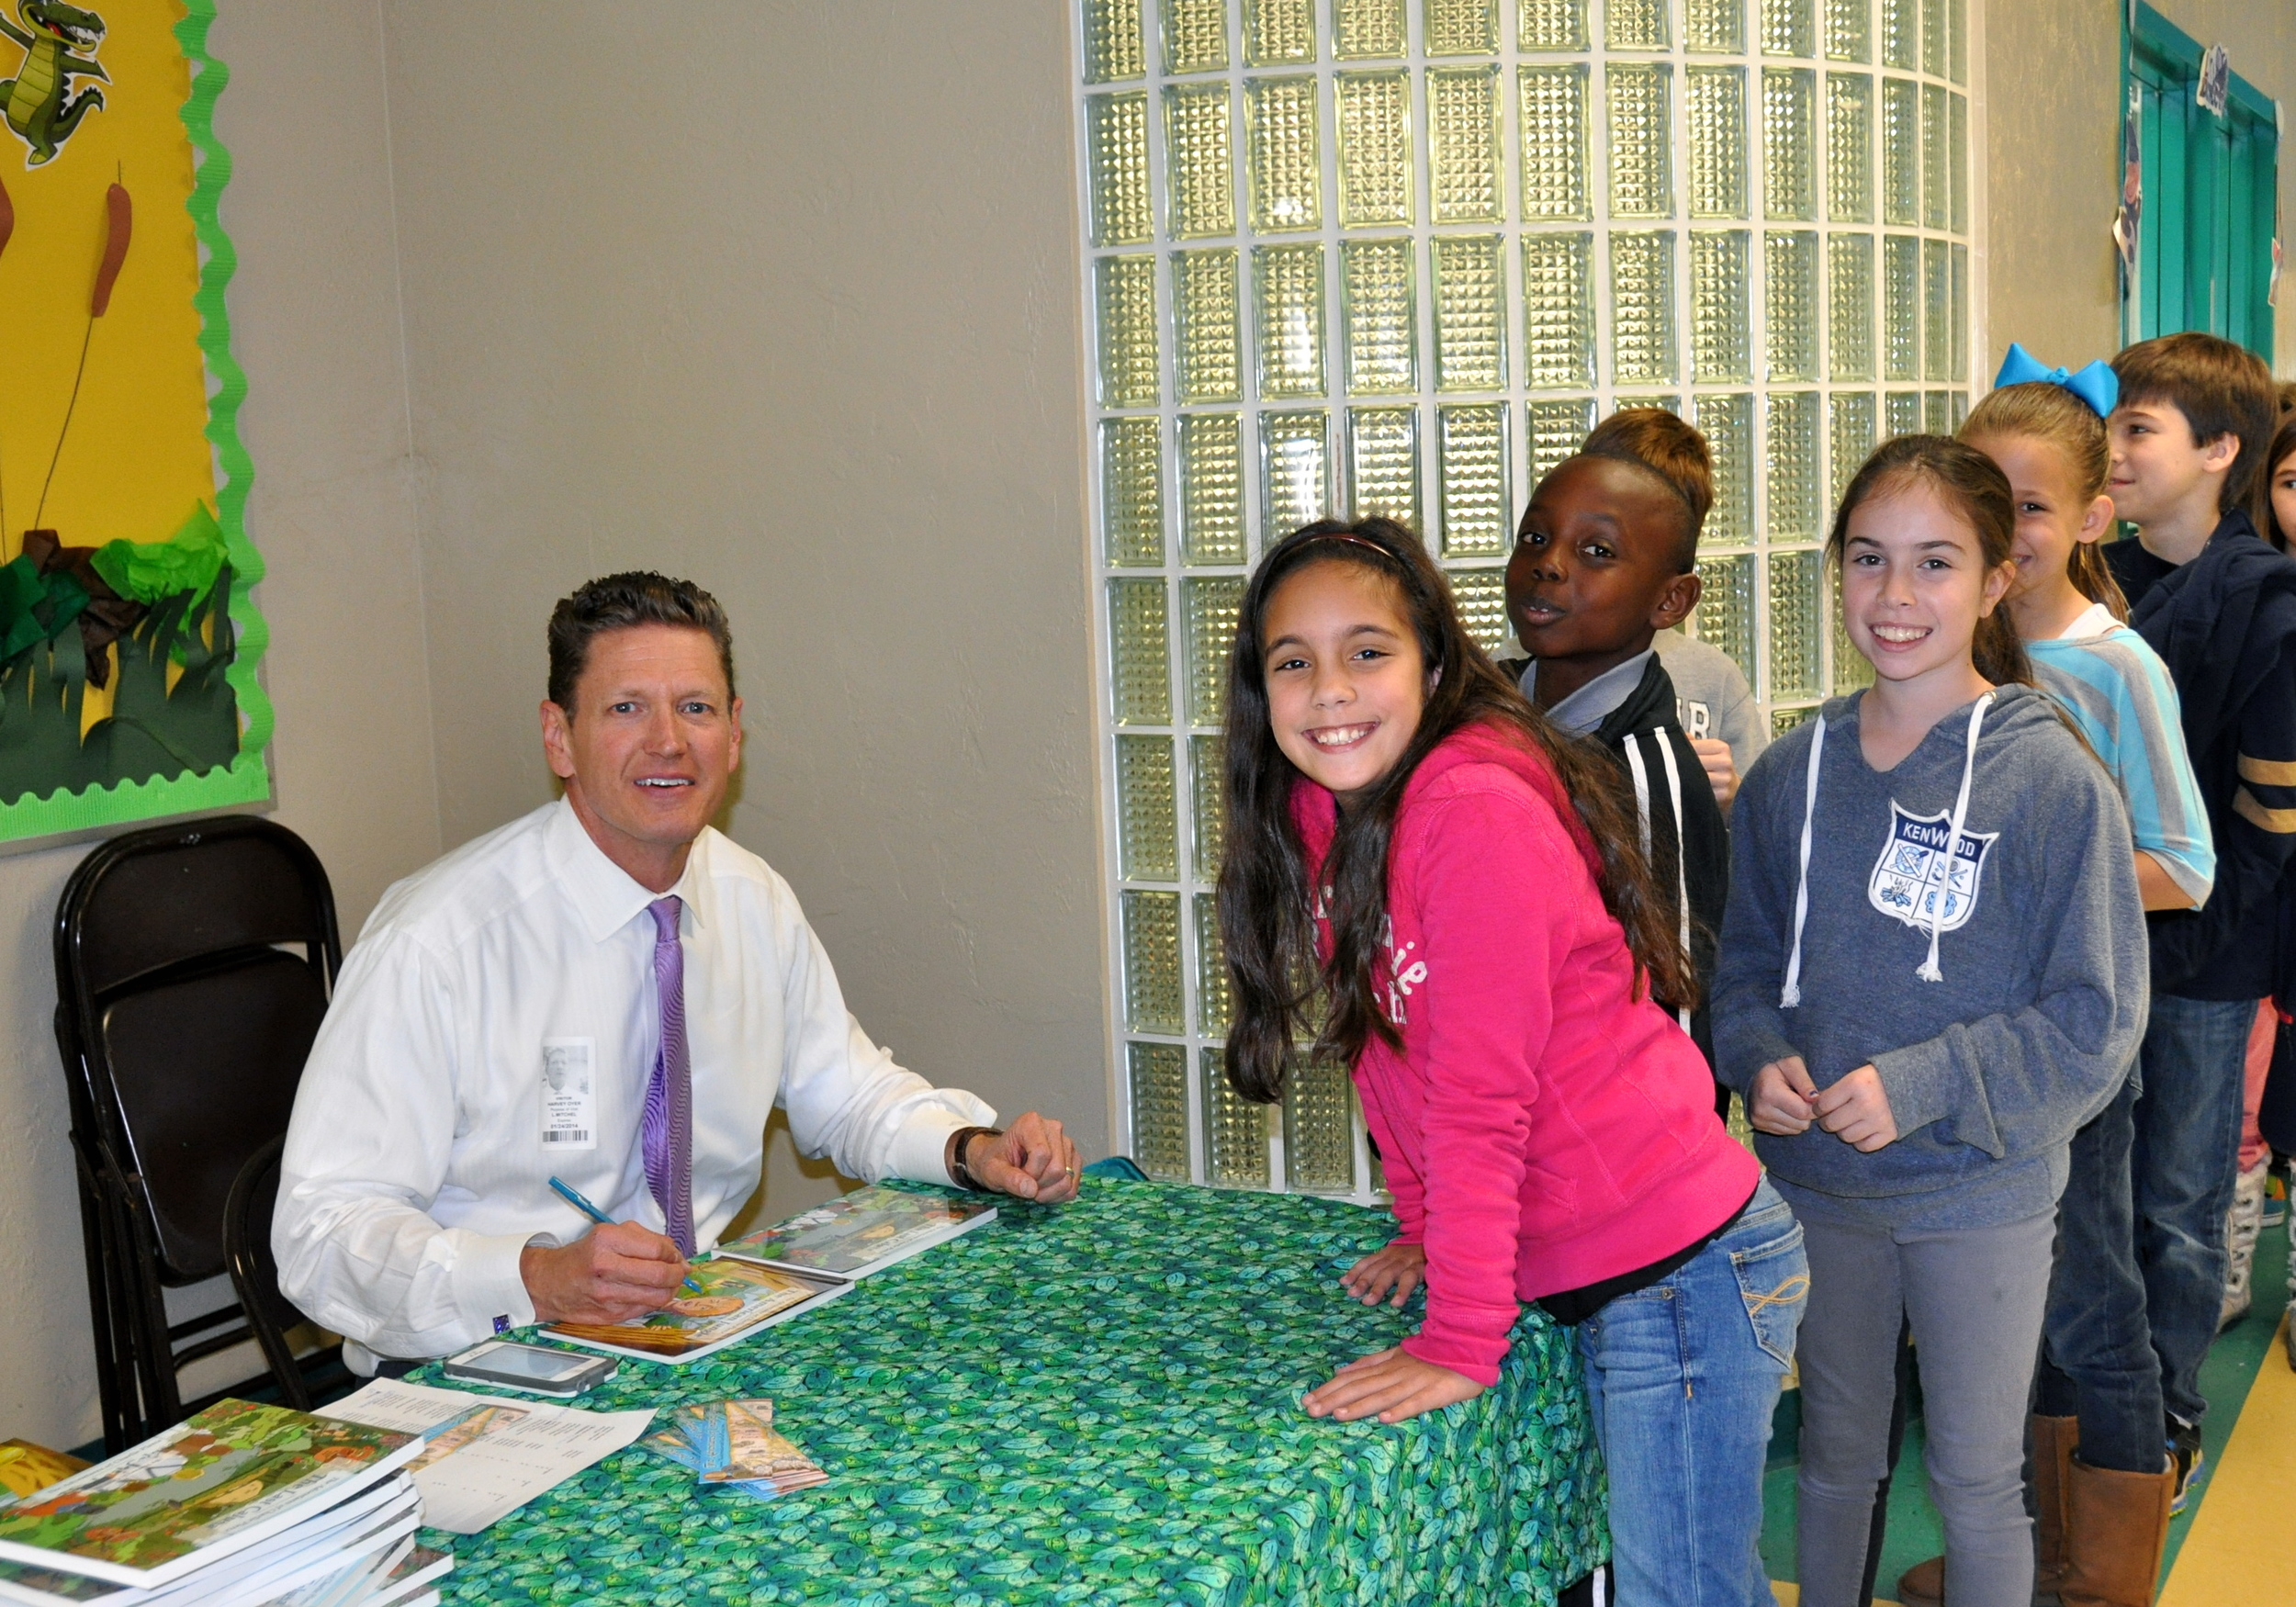 harvey-oyer-with-students-3.JPG